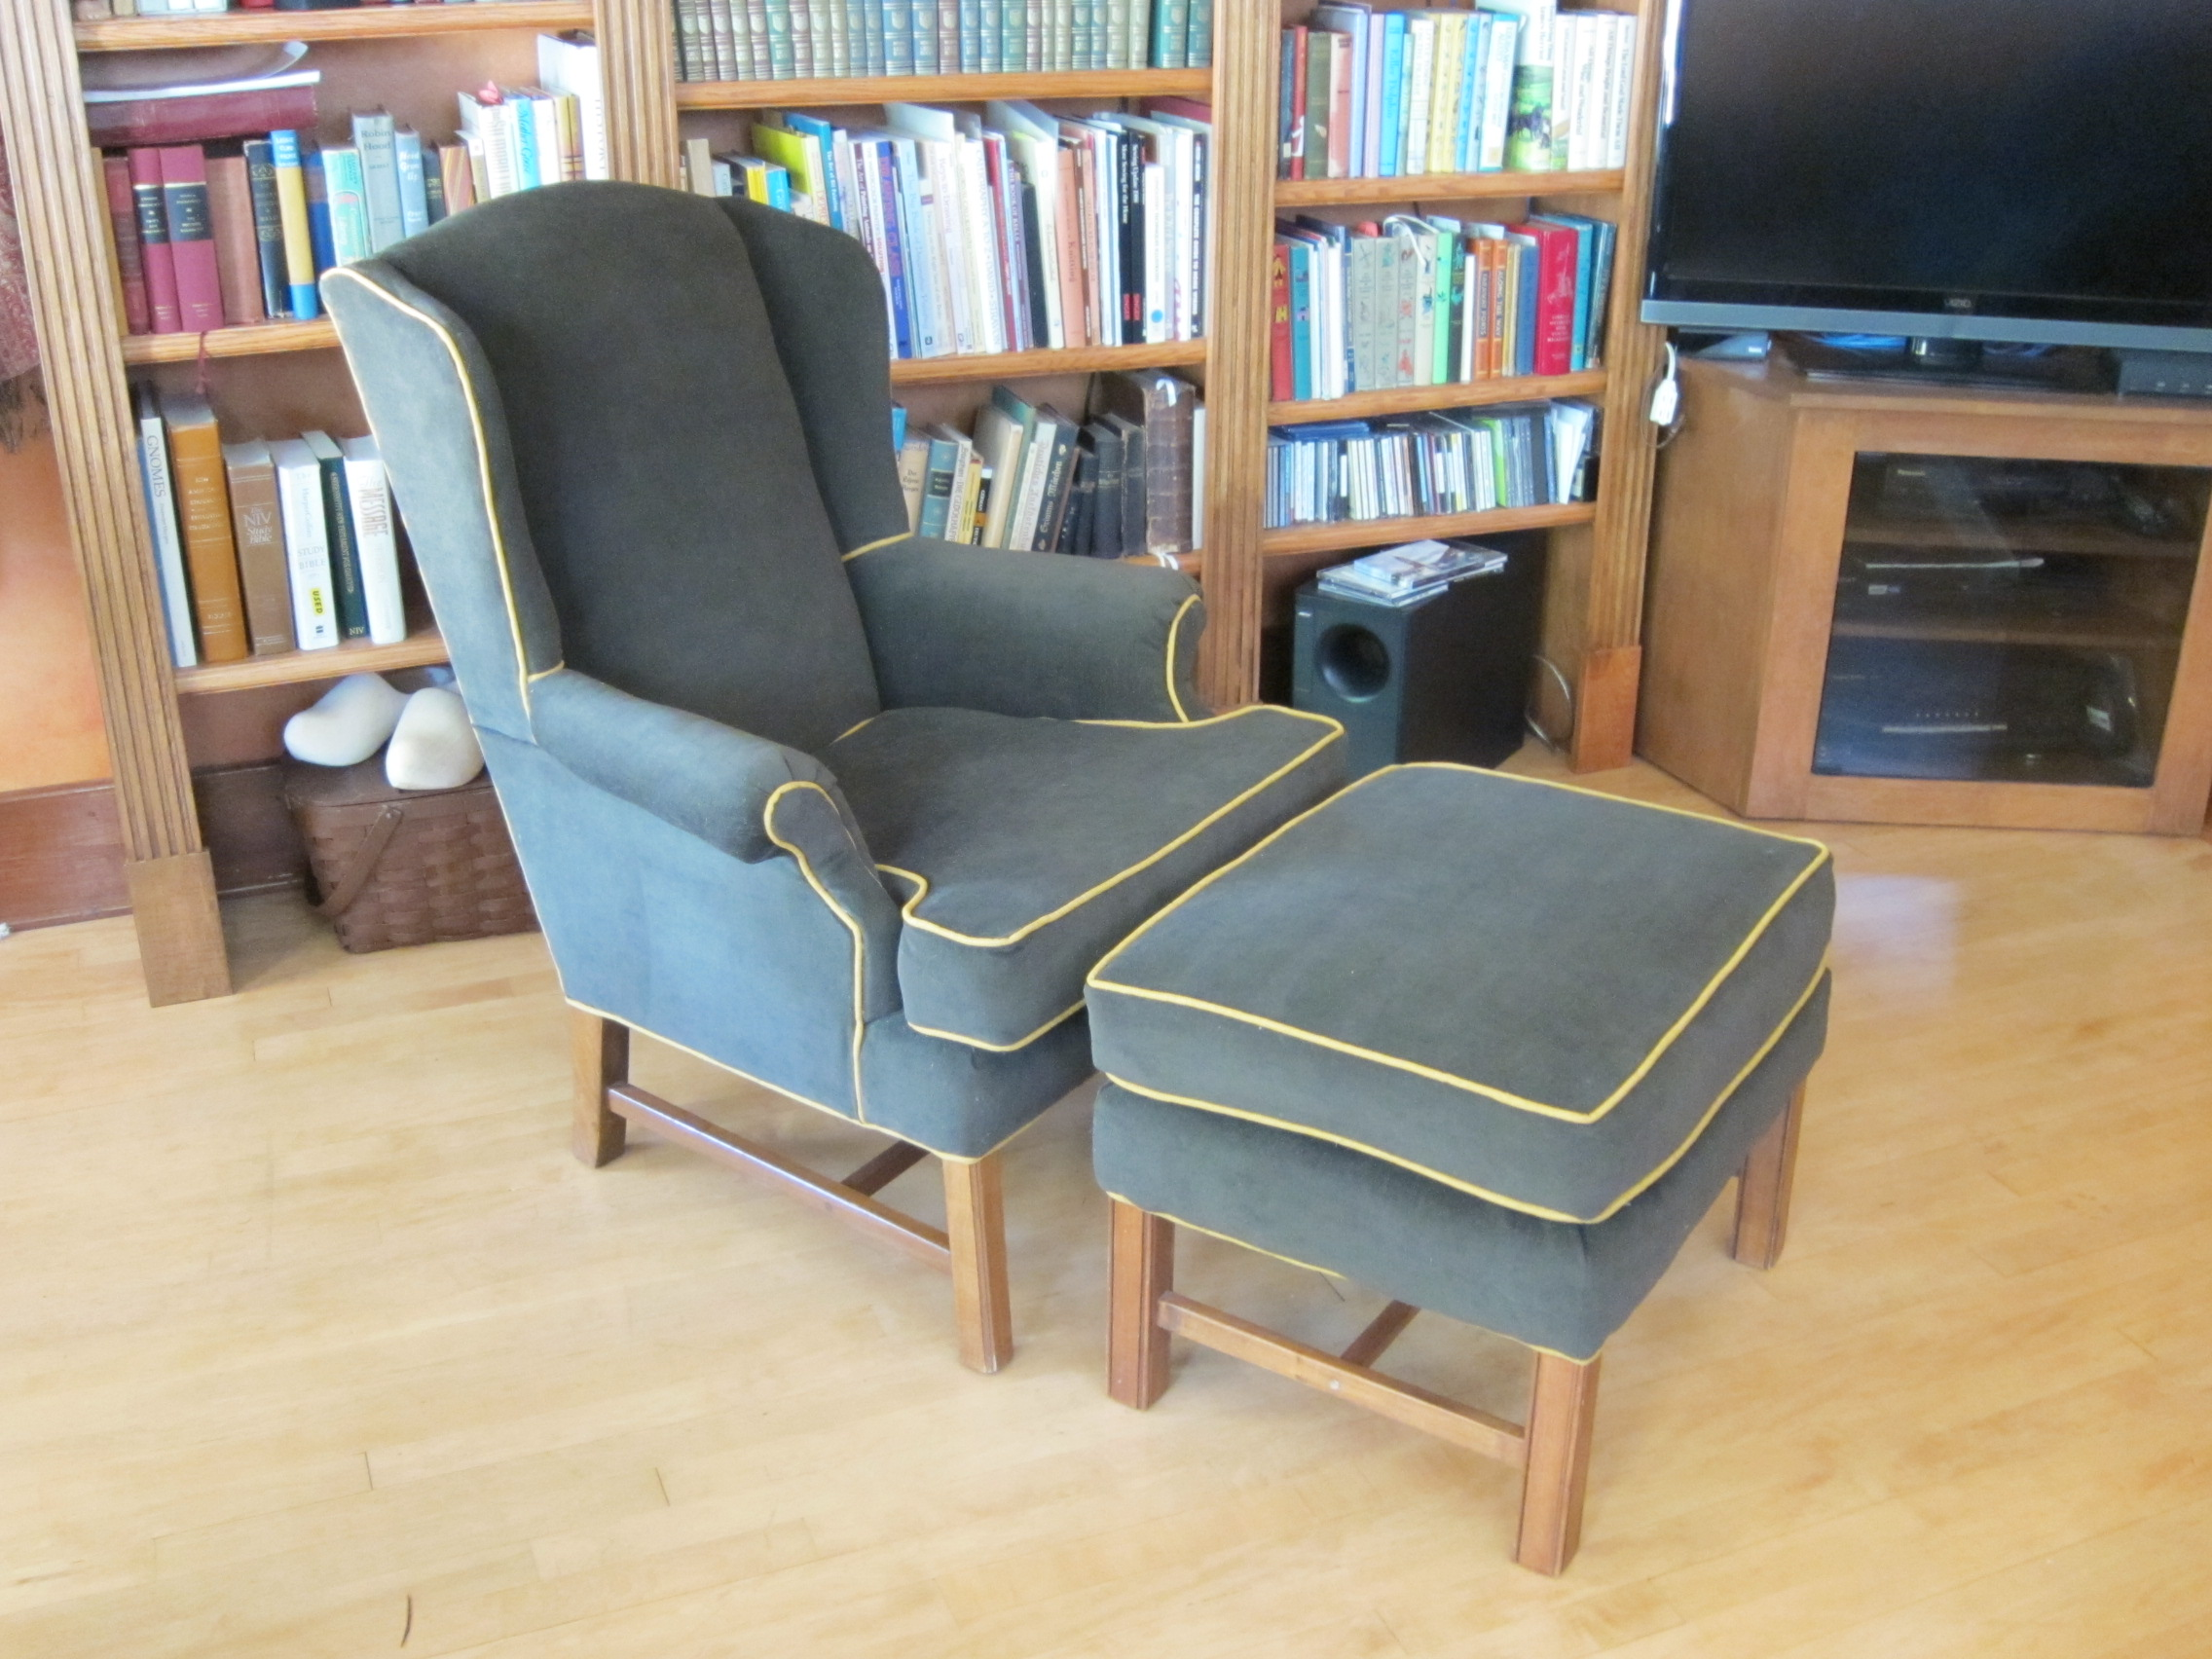 The client chose a heavy weight khaki fabric with contrast trim to coordinate with her new decorating scheme